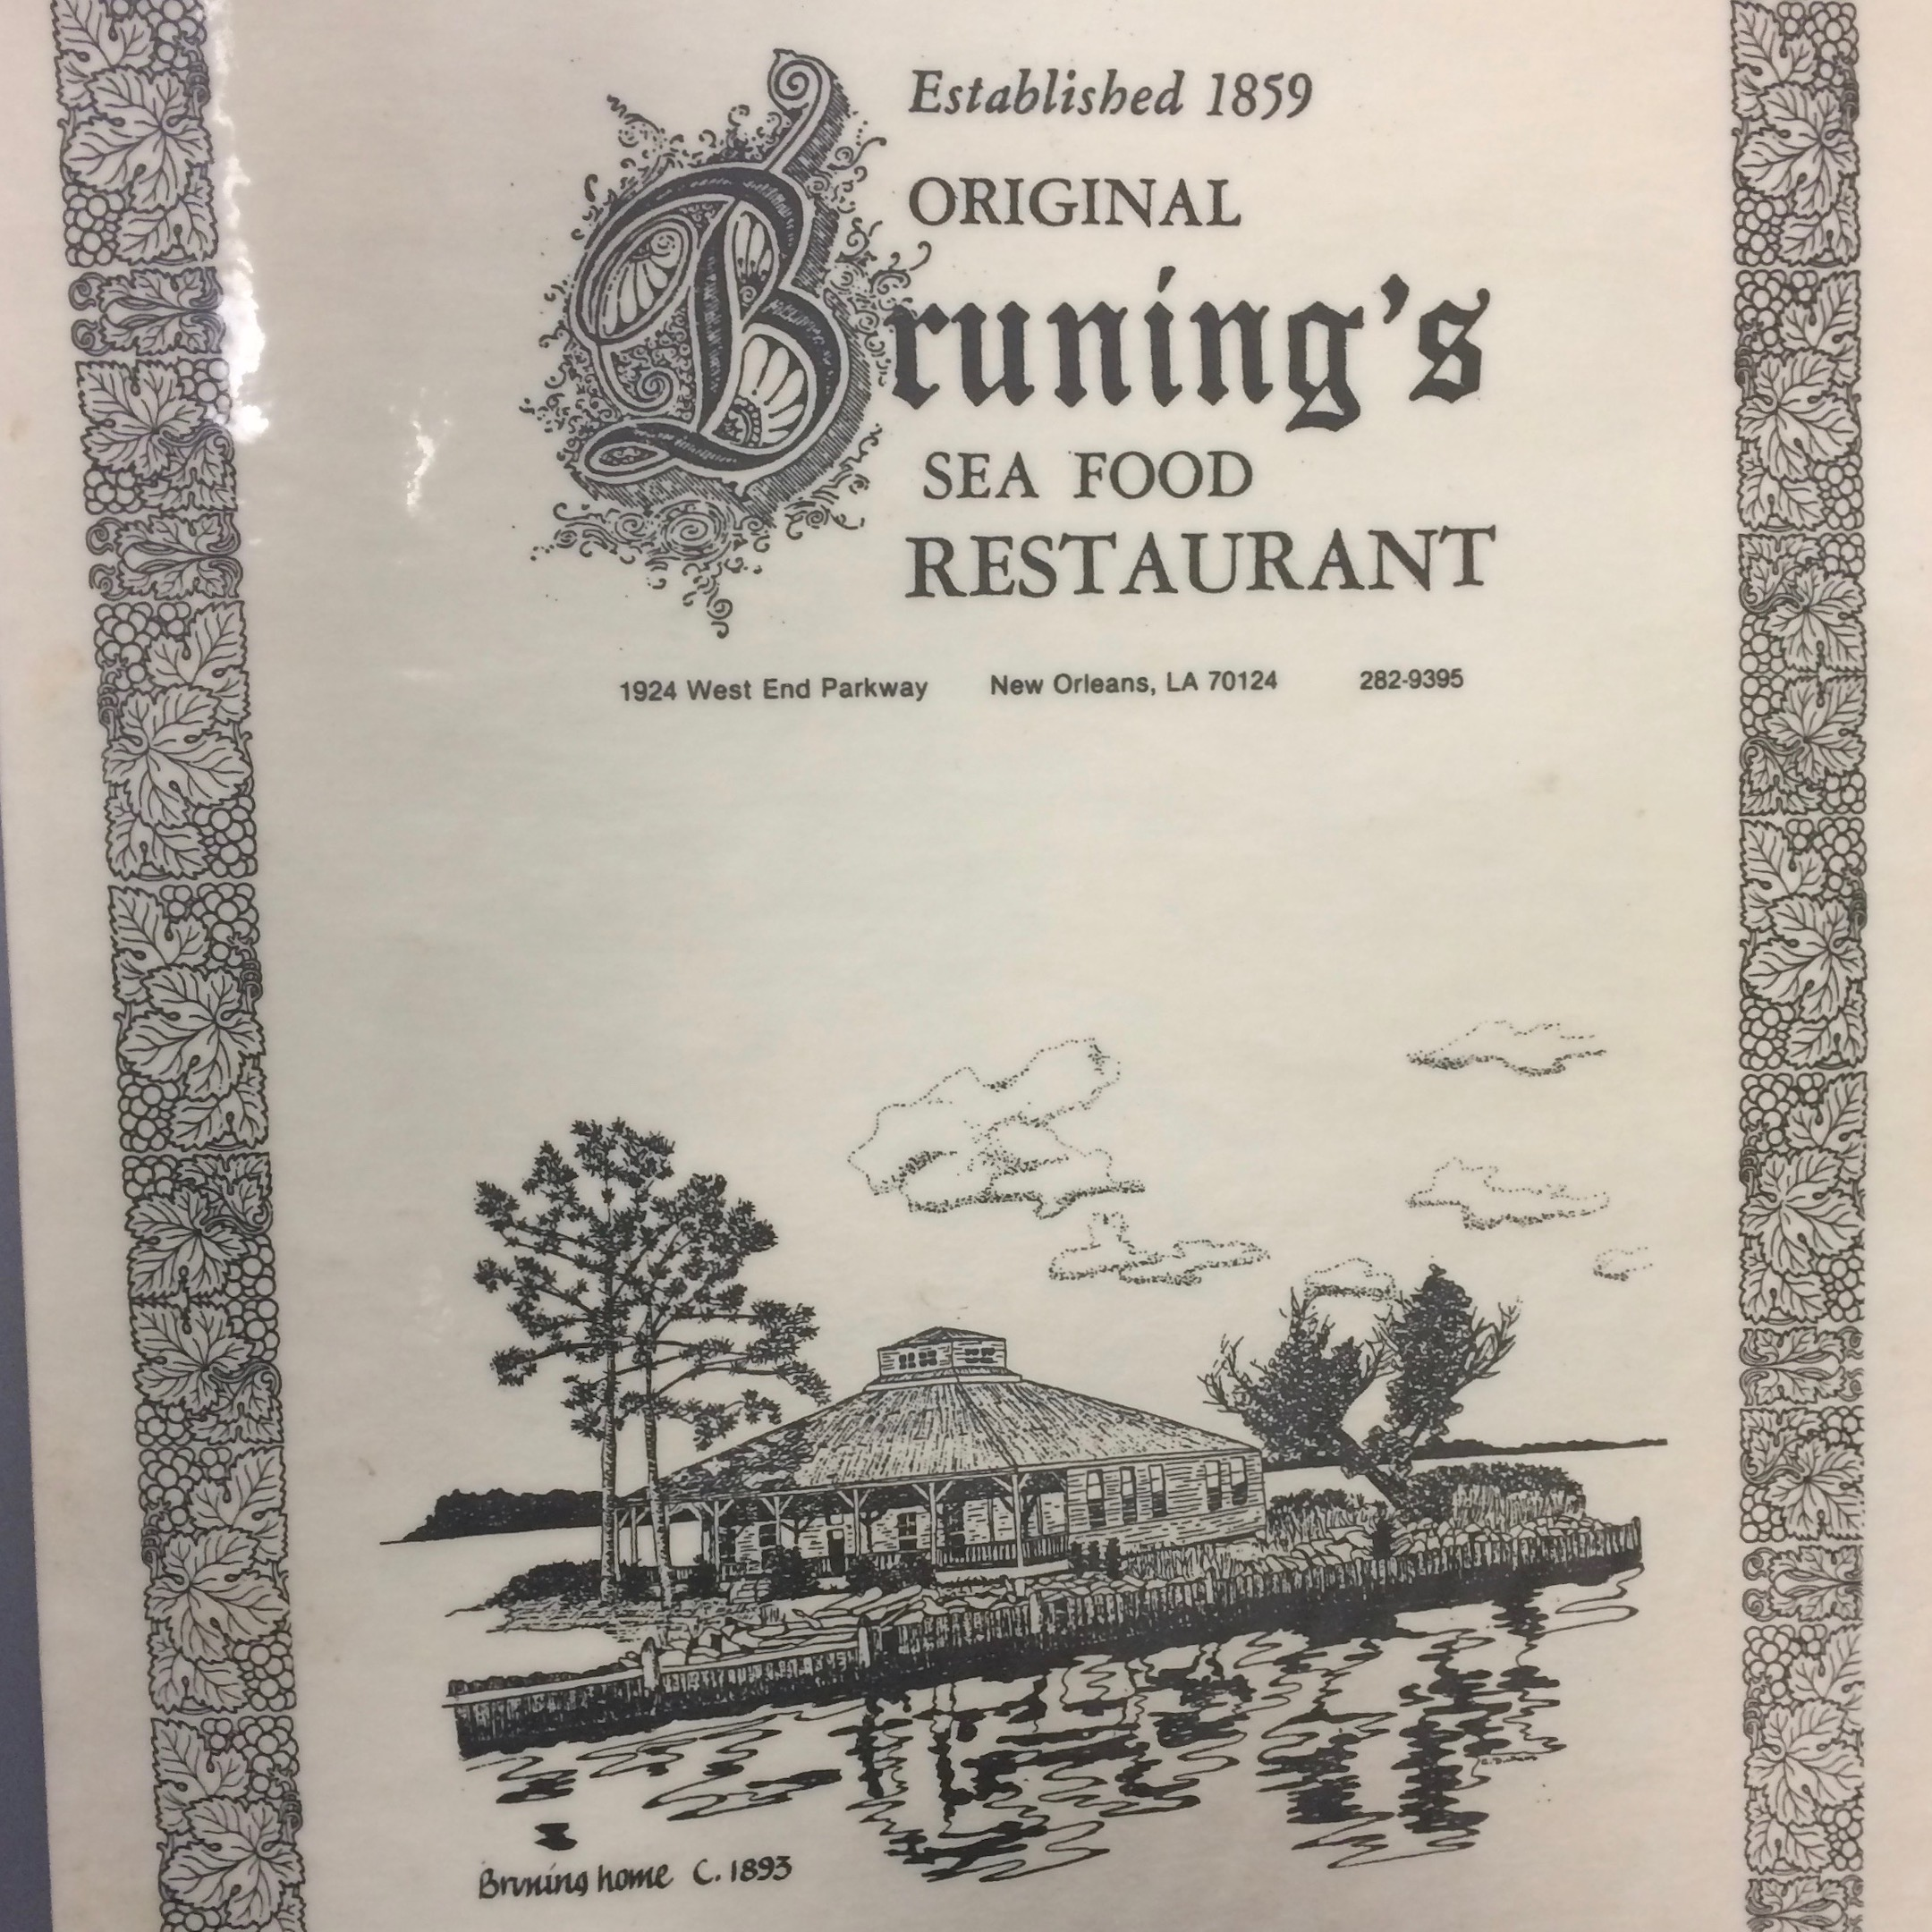 Brunings-Texas Collection - This collection contains materials related to the planning and execution of the Southern Food and Beverage Museum's Texas exhibit and the history of Bruning's Restaurant, including a laminated menu (pictured left).See an item-level PDF finding aid.